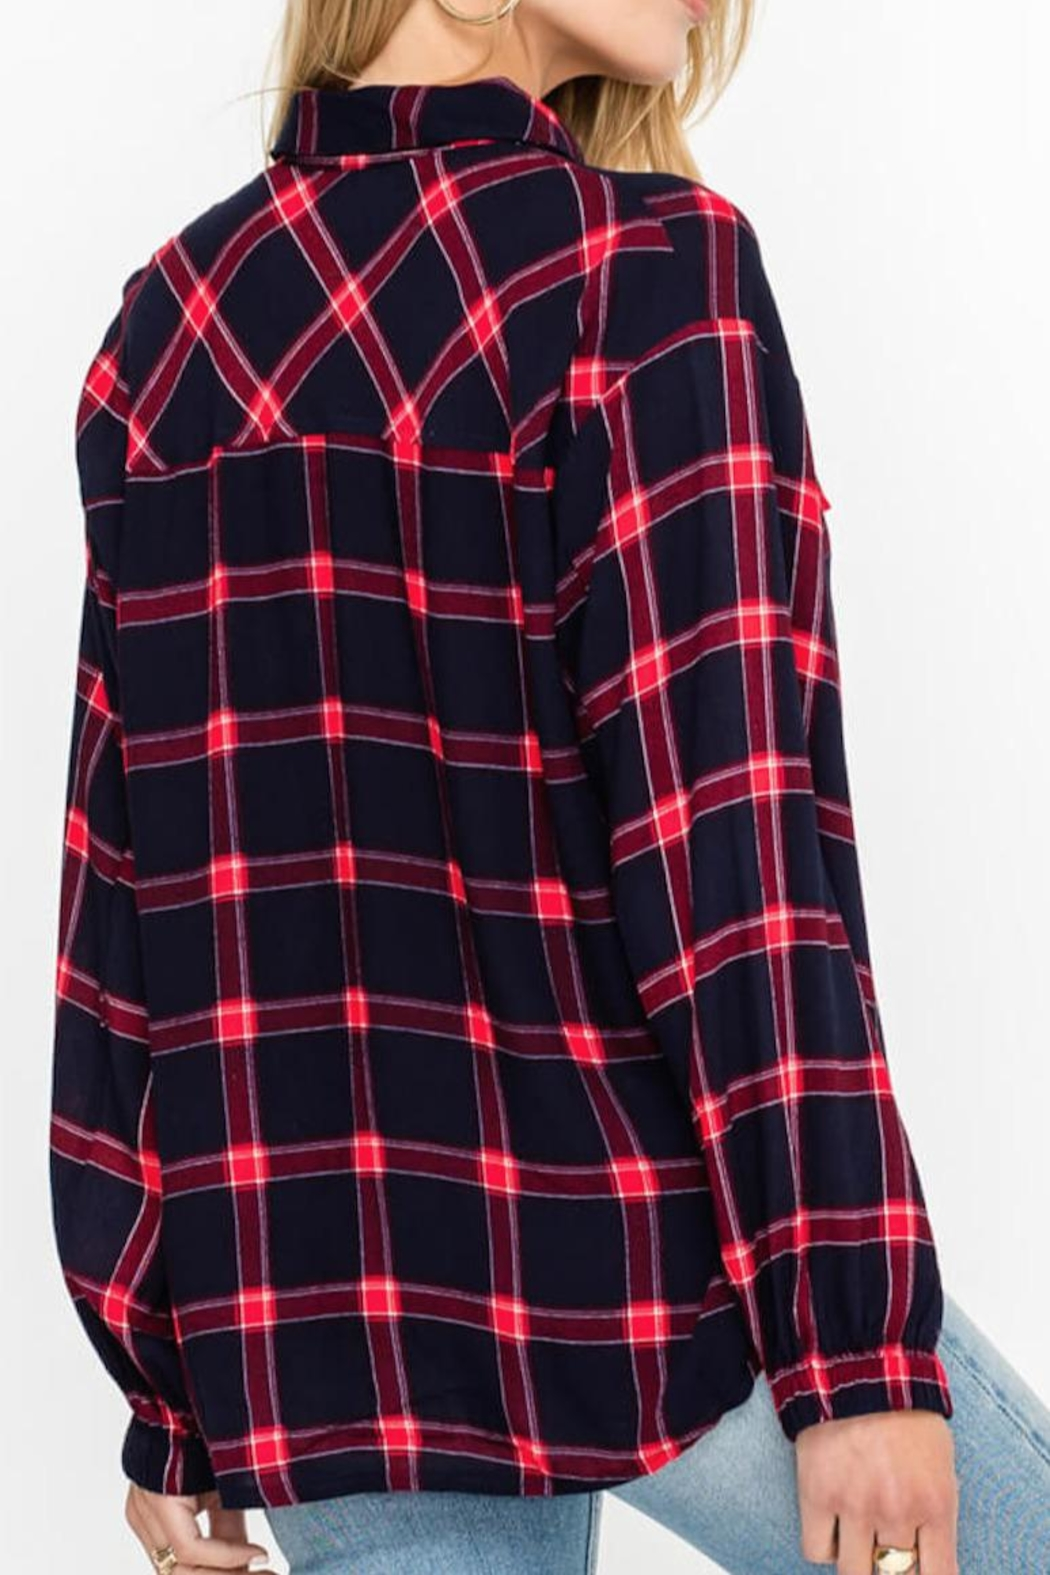 Lush Clothing  Plaid Button Down - Front Full Image